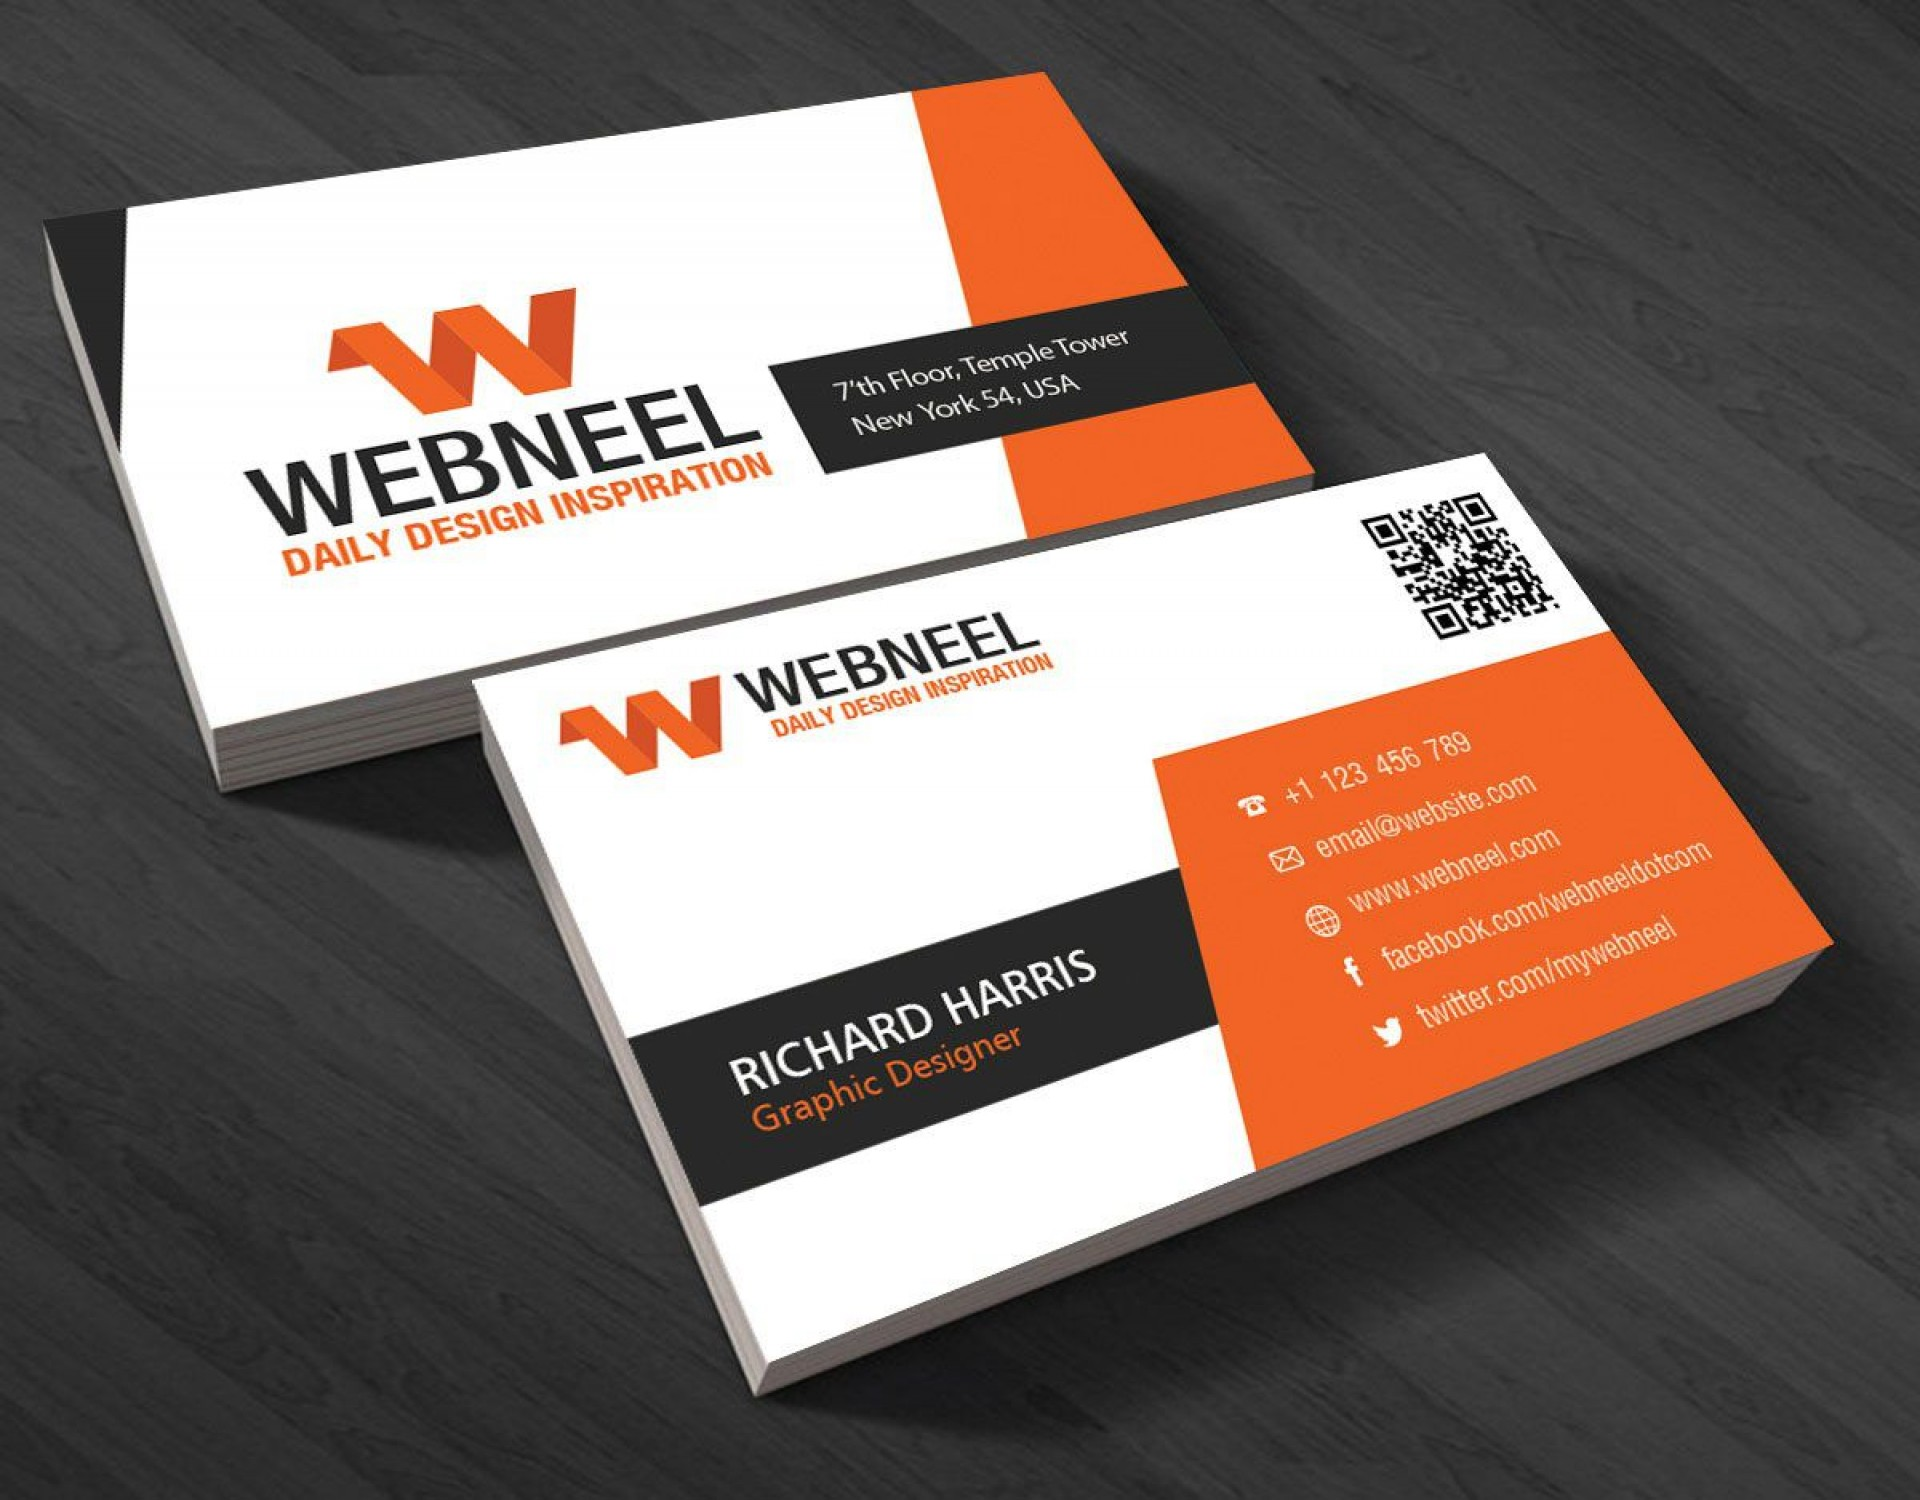 000 Formidable Name Card Template Free Download Picture  Table Ai Wedding1920